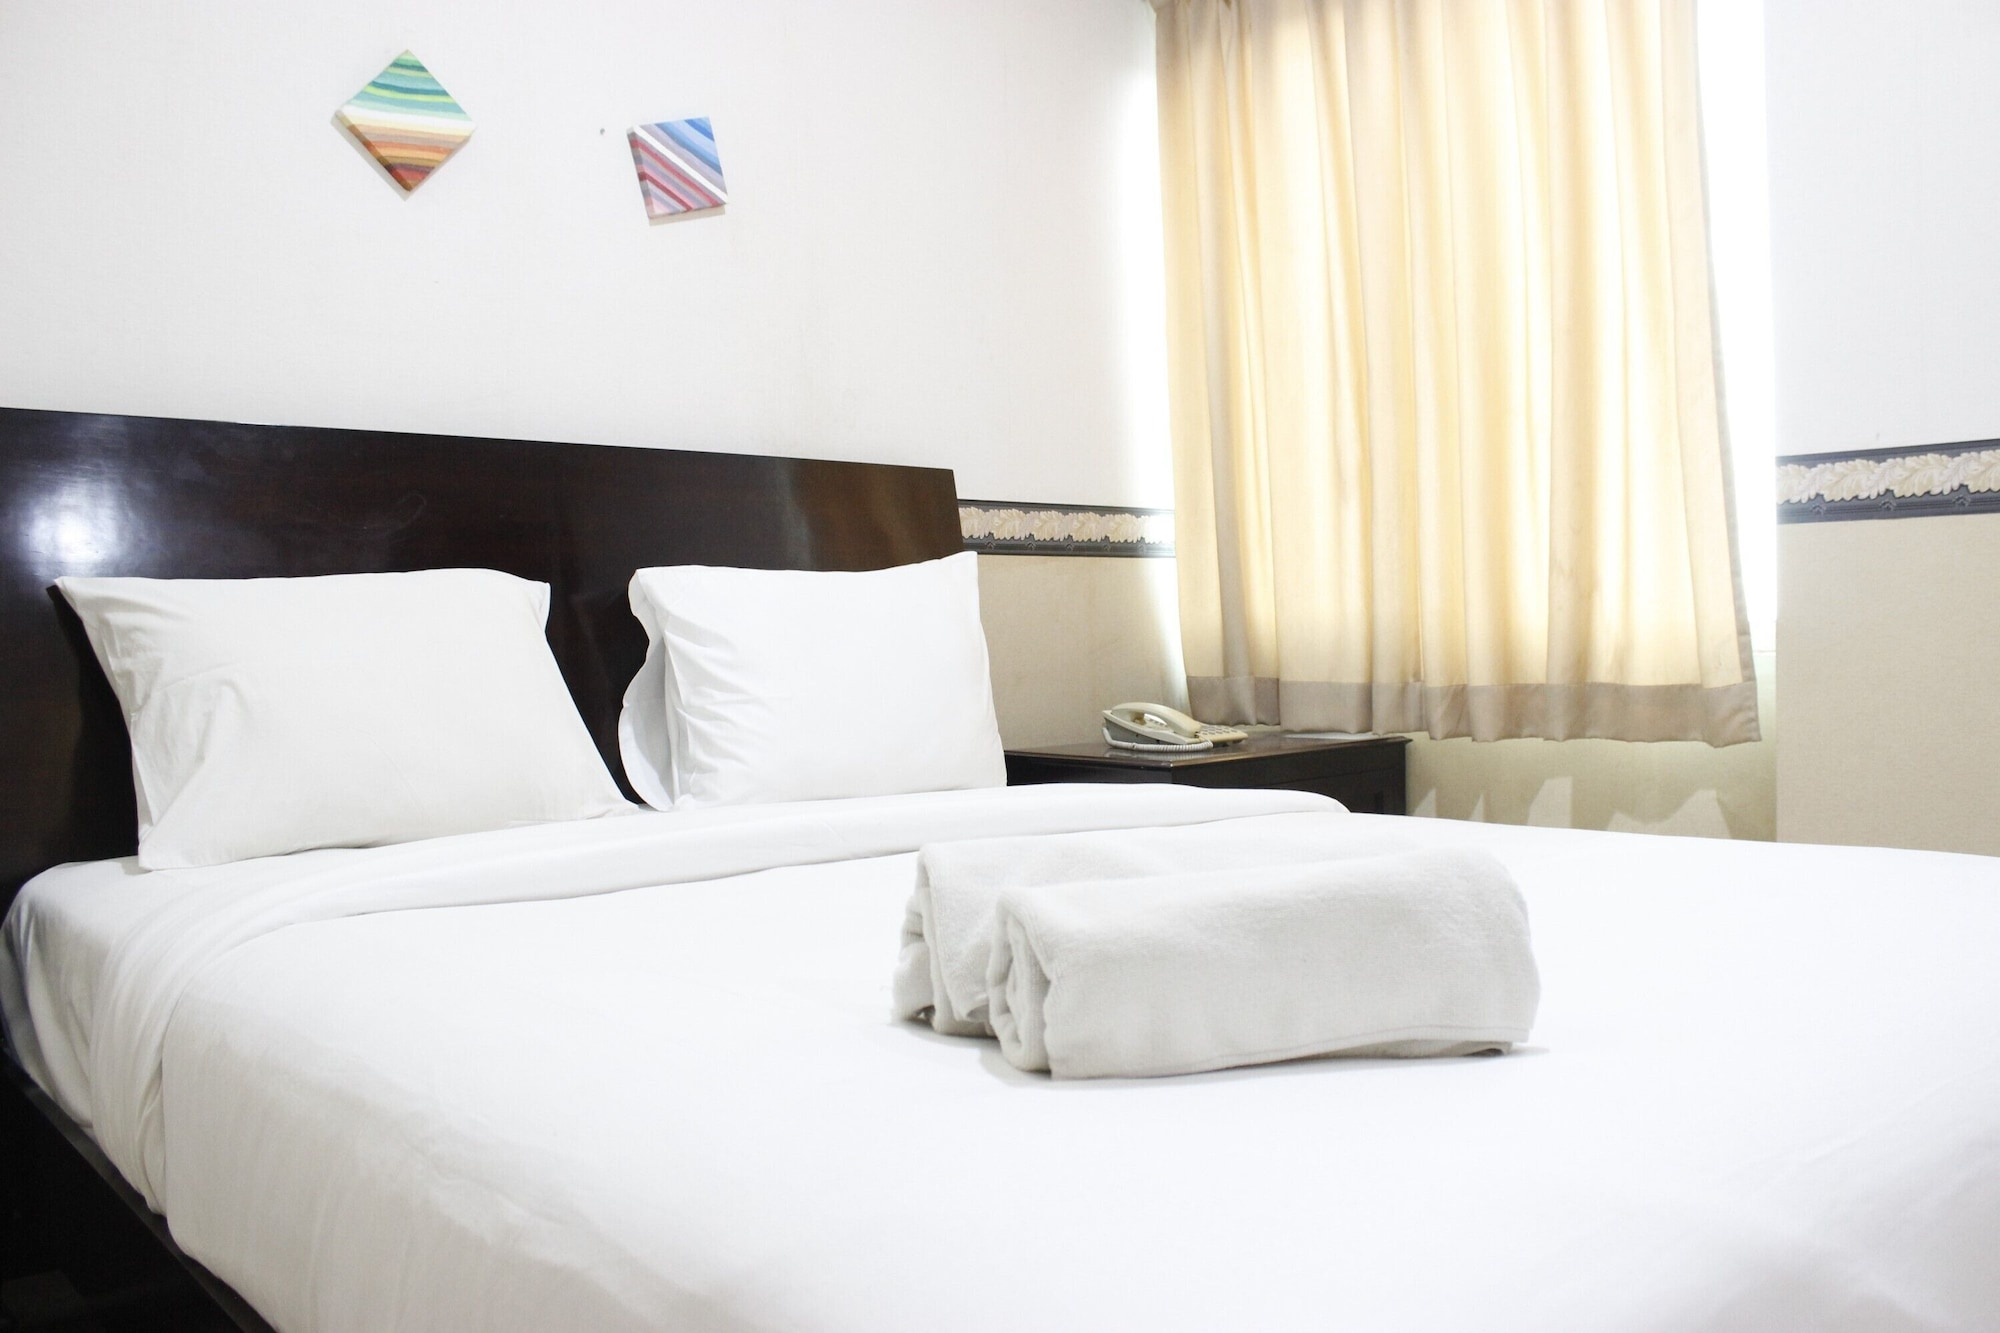 Spacious & Comfy 2BR at Galeri Ciumbuleuit Apartment, Bandung